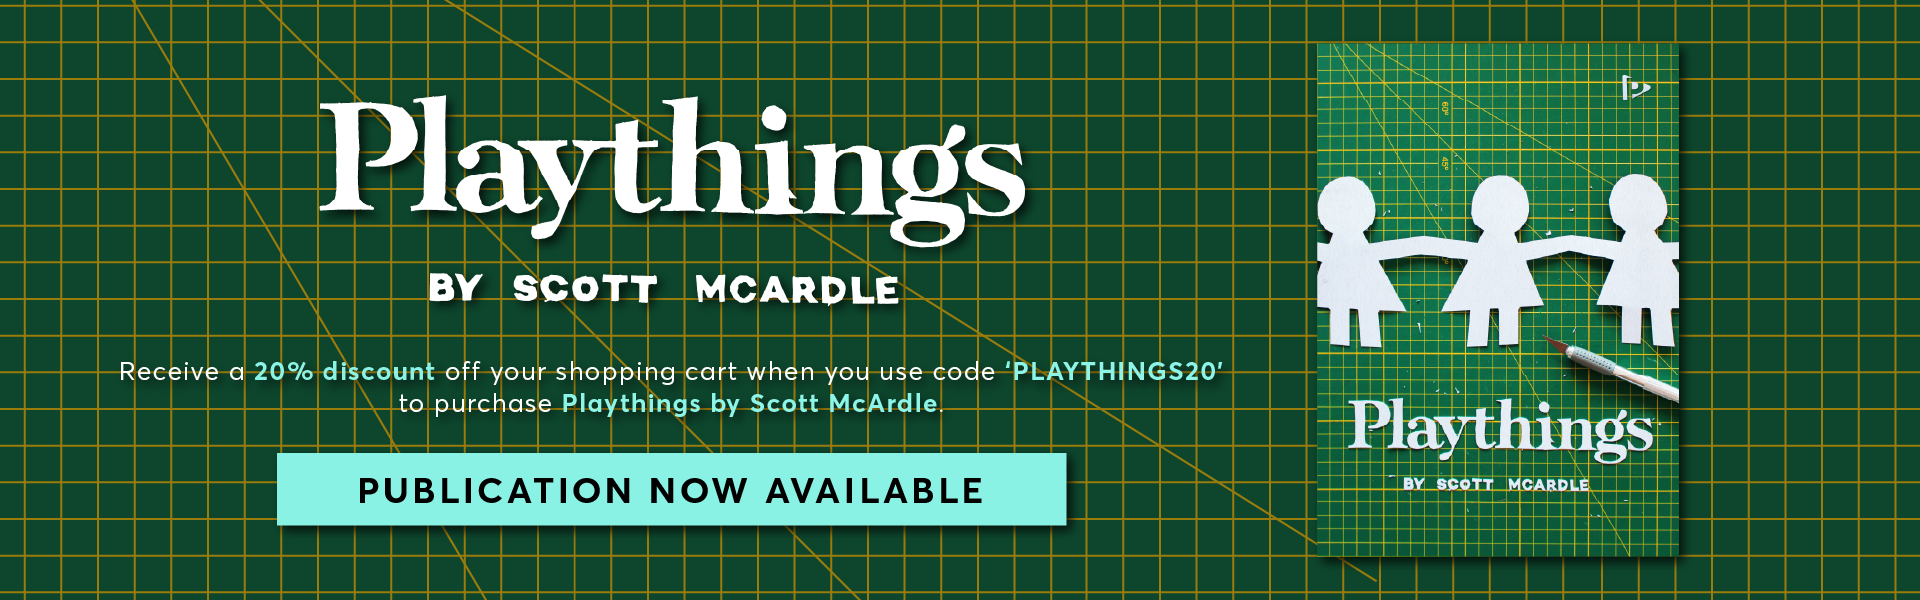 Playthings by Scott McArdle